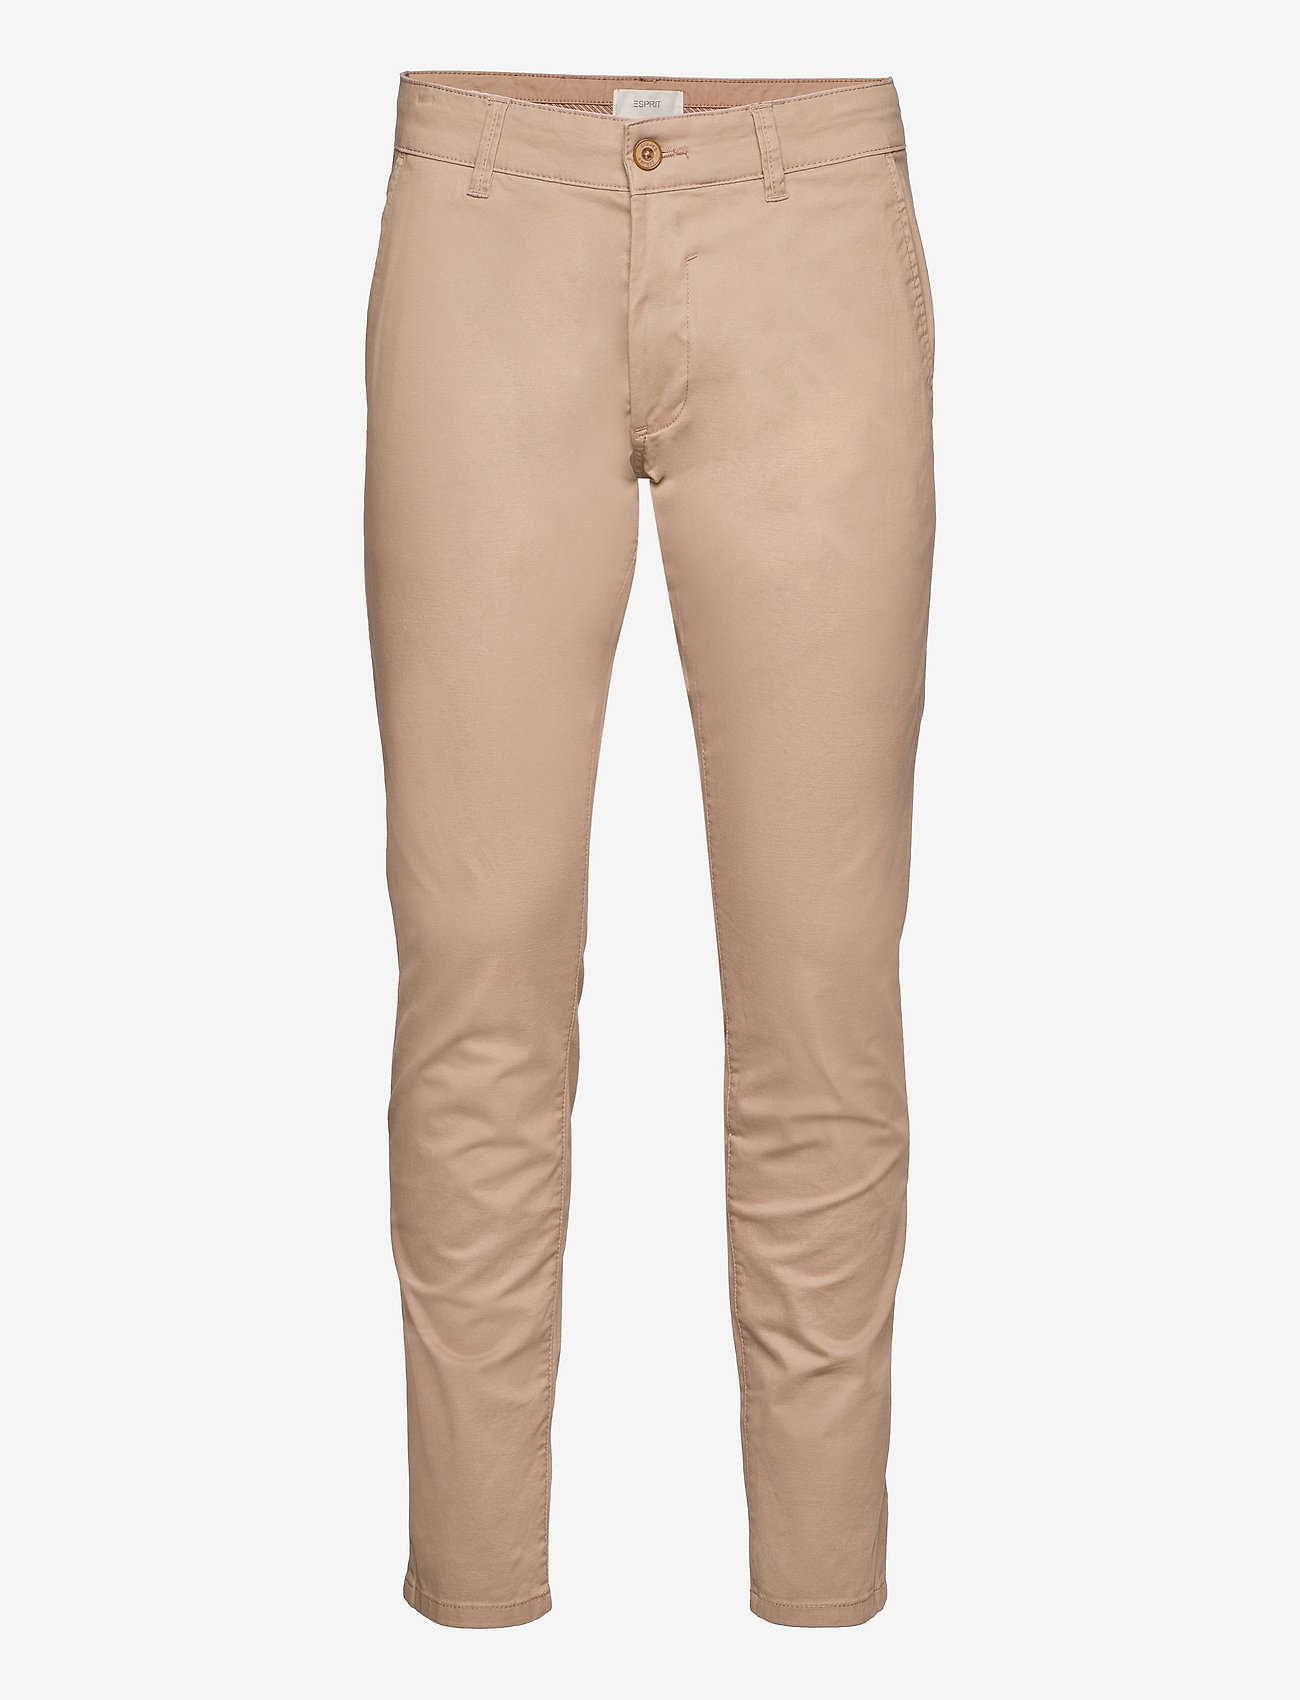 Esprit Casual - Pants woven - chino's - beige - 0